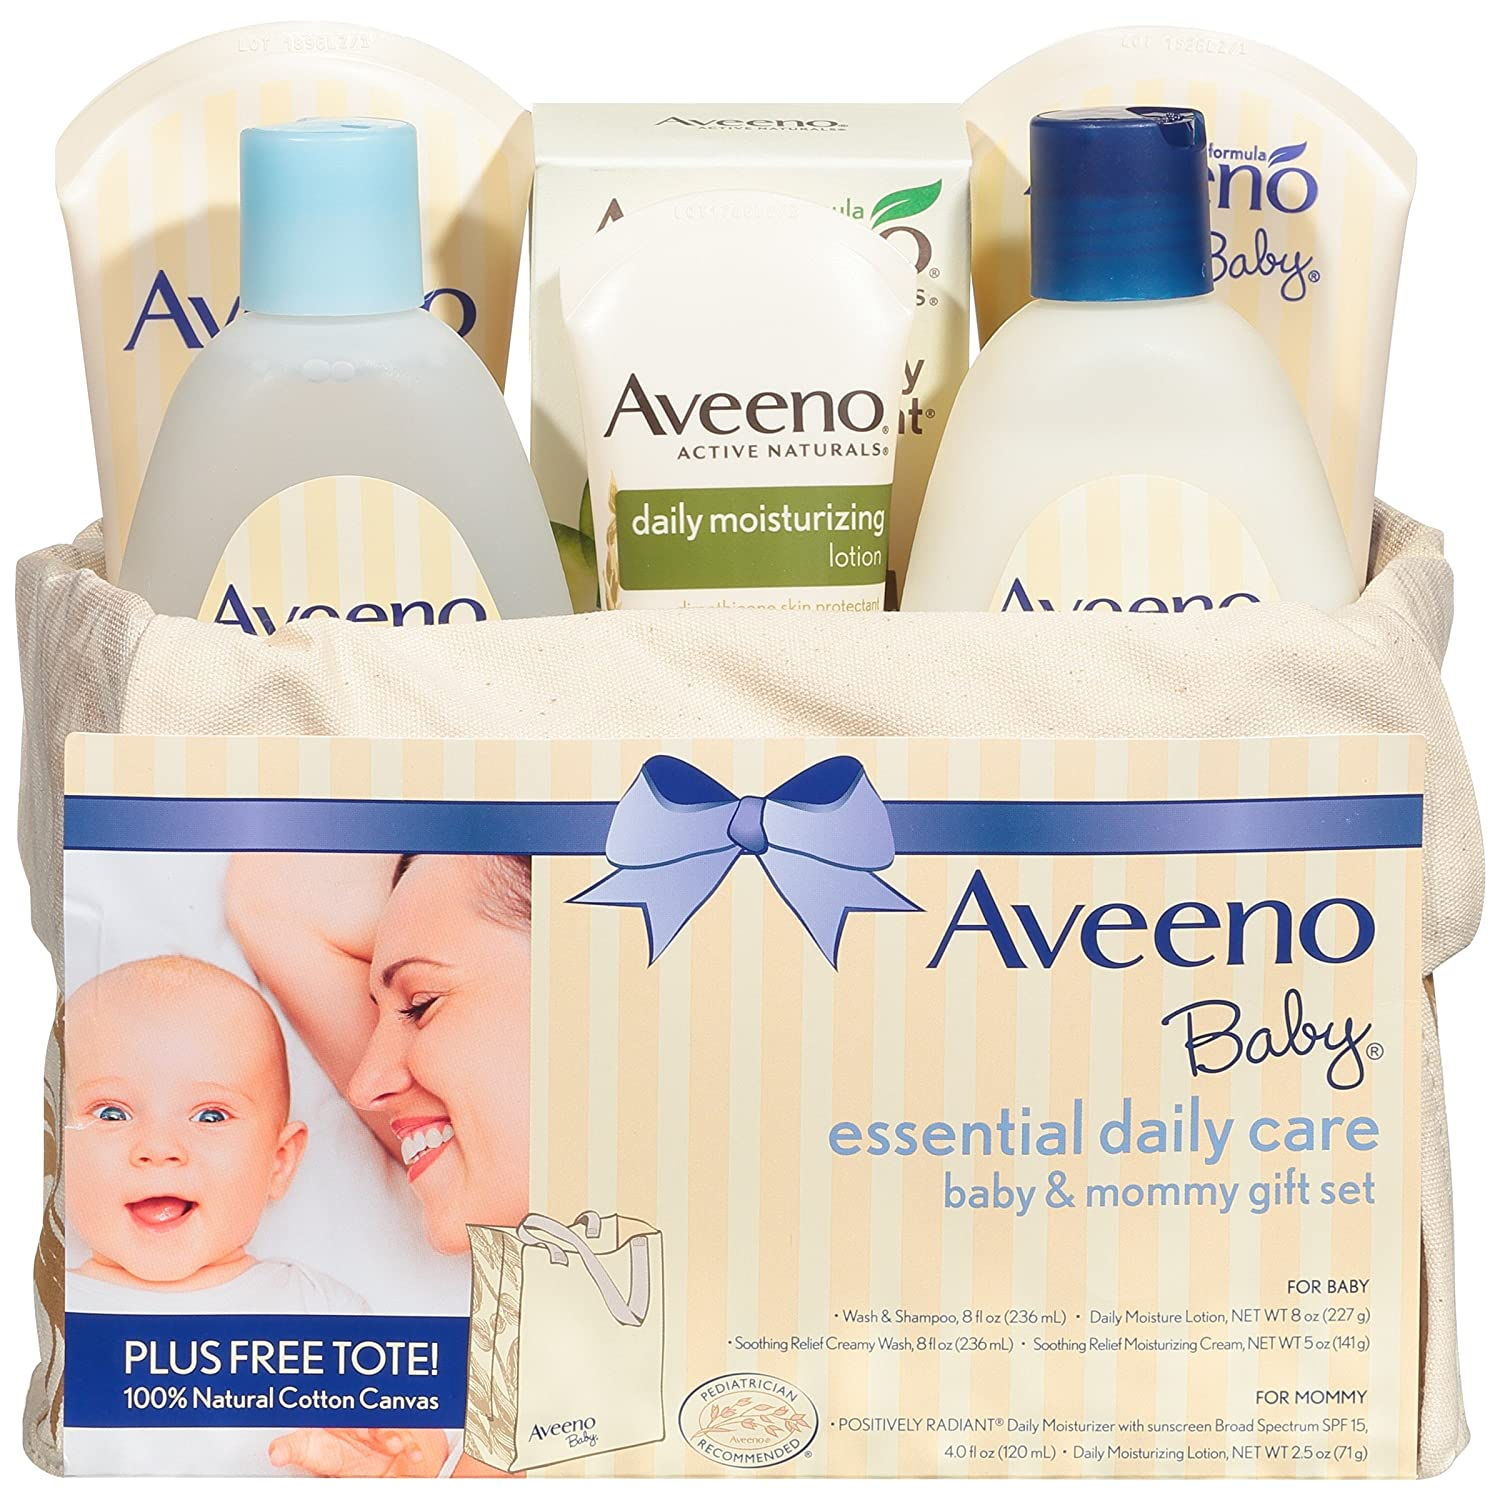 c8353cc39146 Amazon.com  Aveeno Baby Essential Daily Care Baby   Mommy Nourishing ...